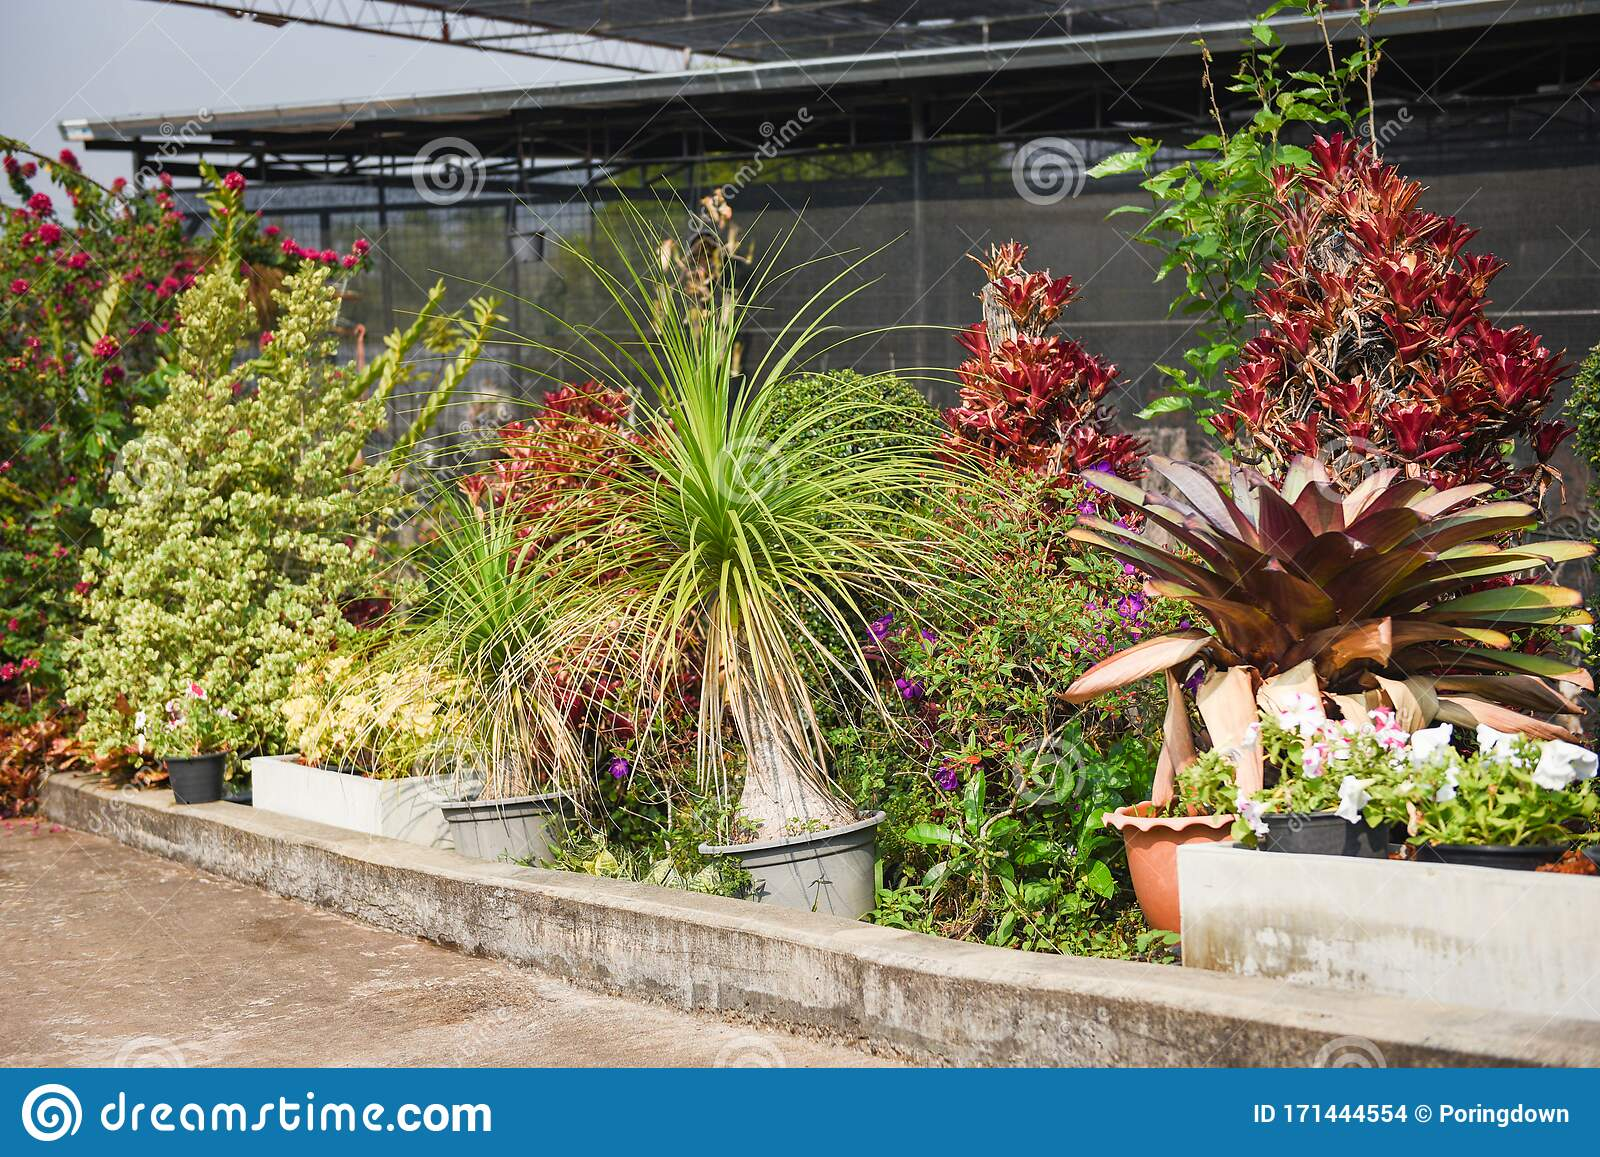 Ornamental Plant Walkway In Home Gardening And Decorating Outdoors Greenhouse Environments Secret Garden And Modern Gardening Stock Photo Image Of Lawn Outdoor 171444554